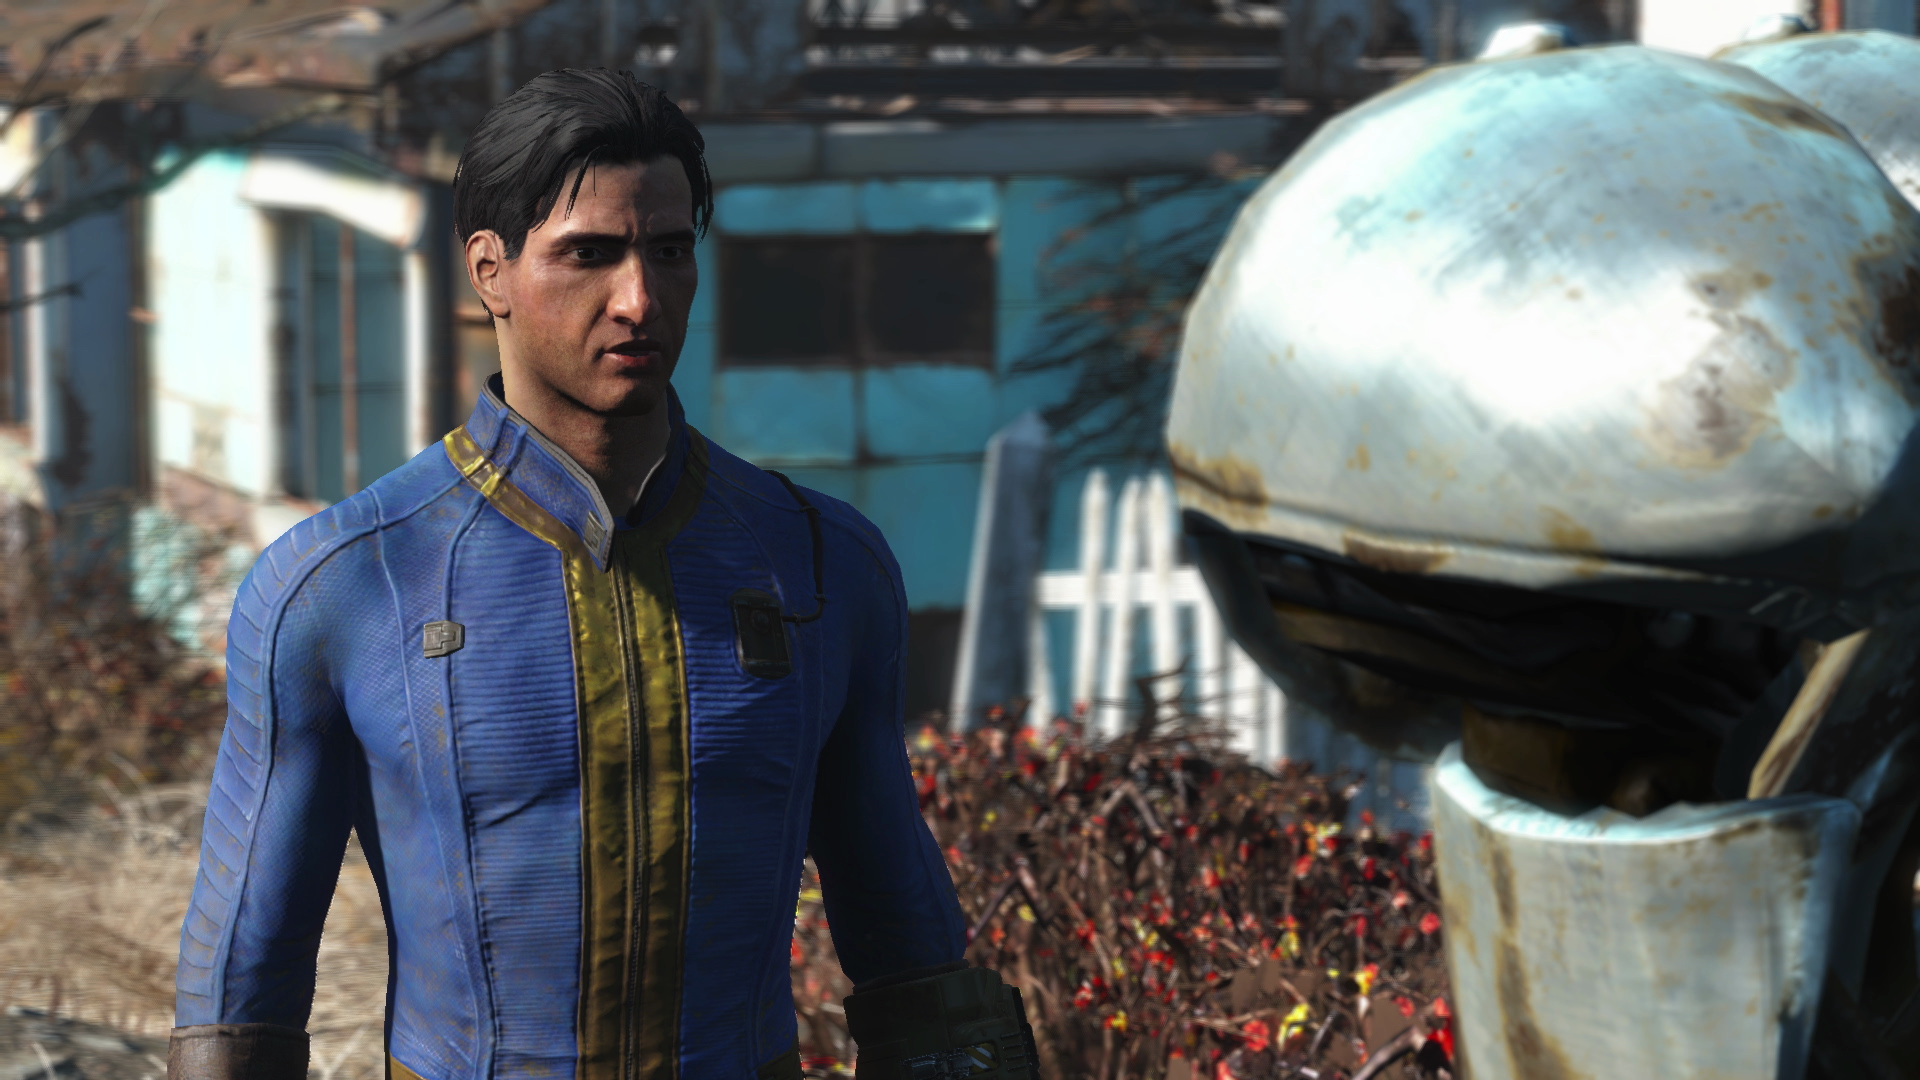 ' ' from the web at 'https://cdn.vox-cdn.com/uploads/chorus_image/image/58109139/Fallout4_E3_Codsworth2_1434323962.0.0.png'